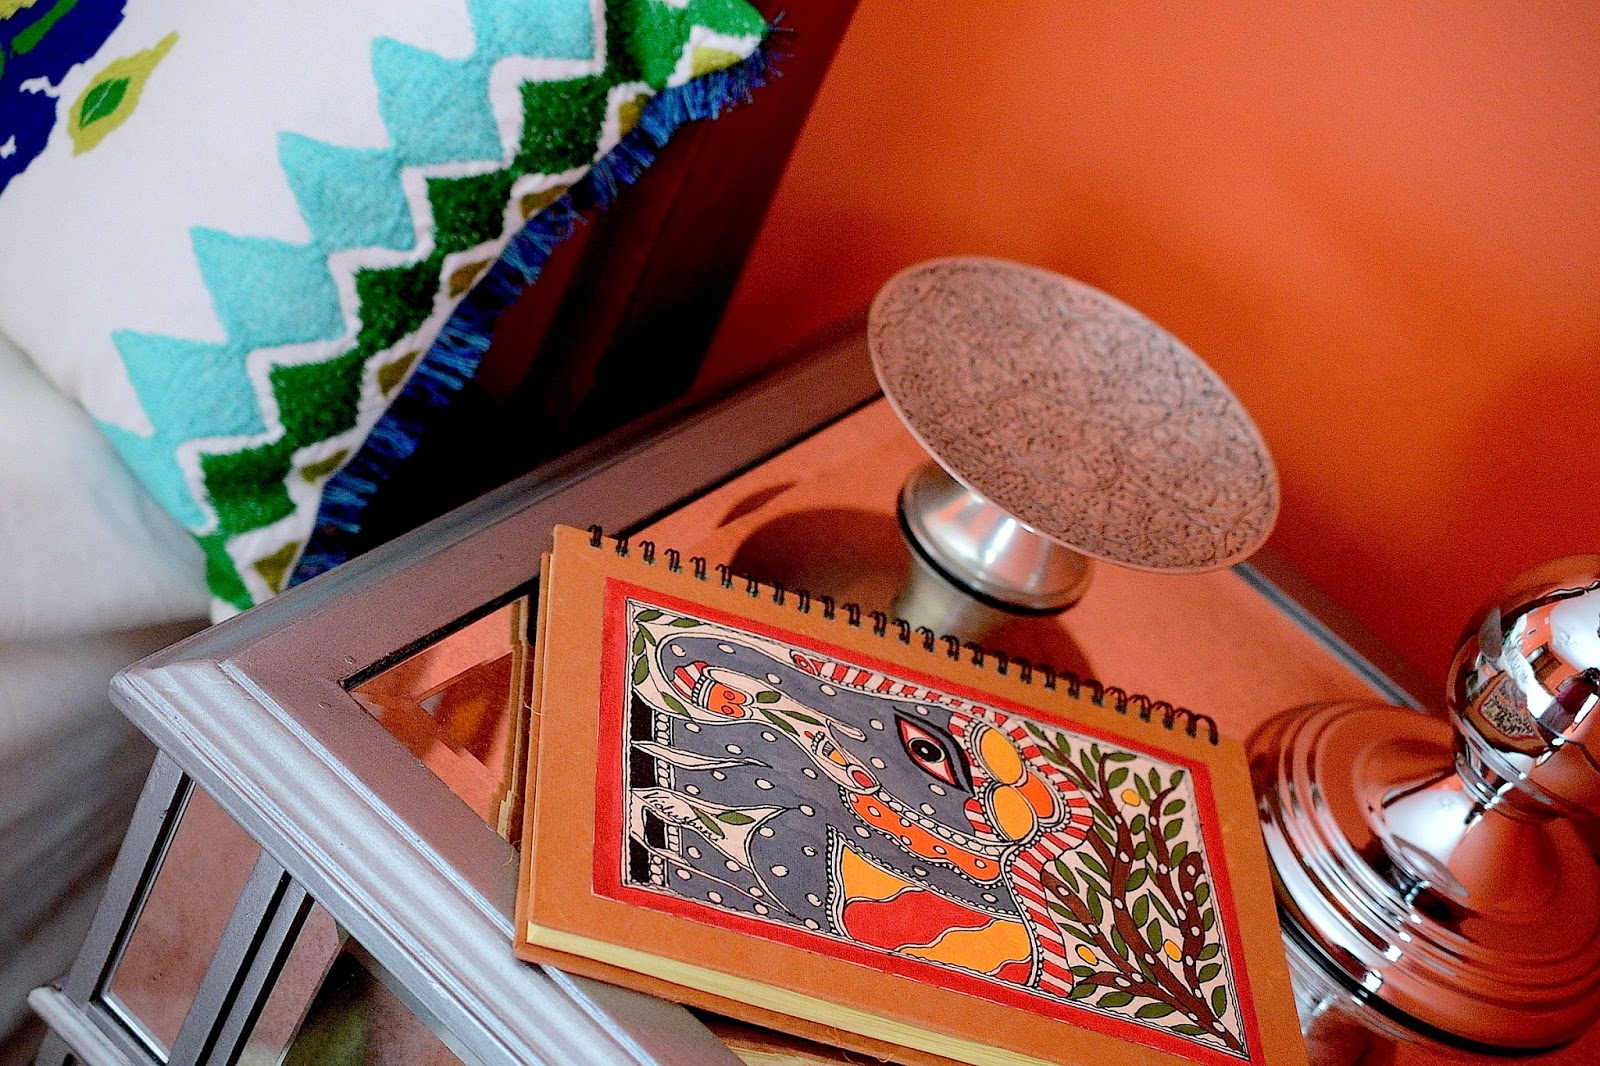 Fusion Dcor: Home Accents Combining Cultures And Art Forms